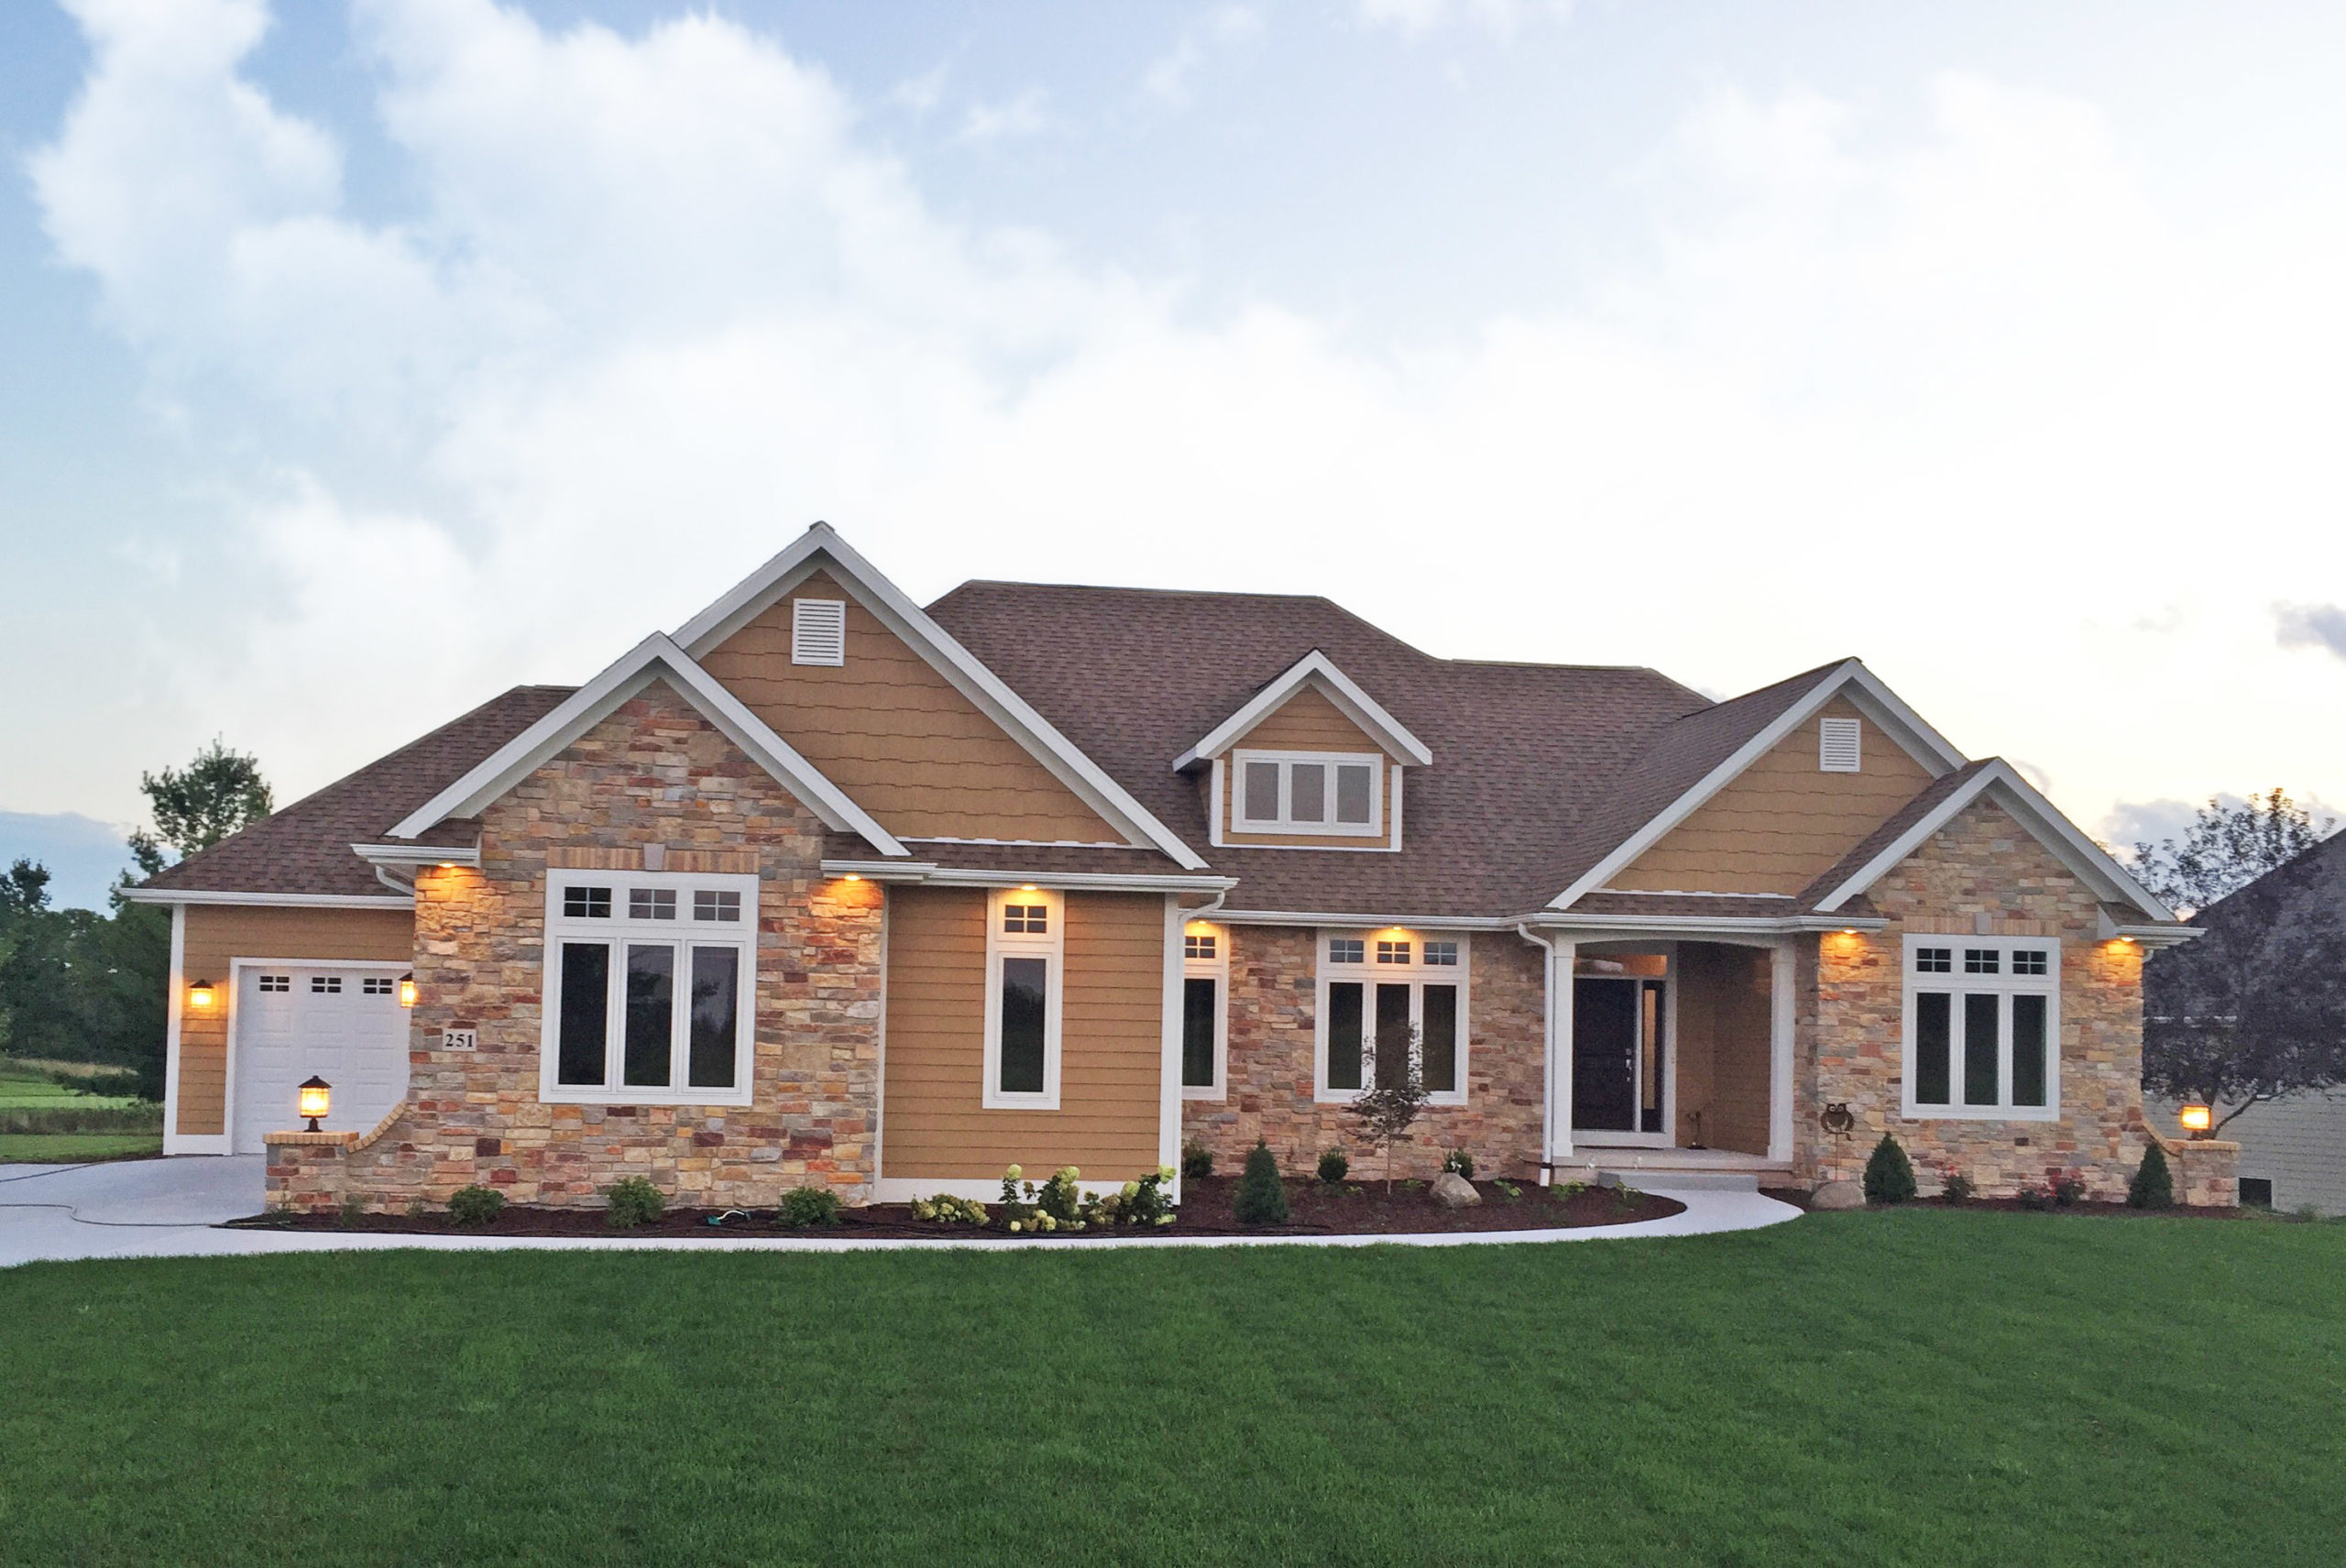 Exterior - 2015 Parade of Homes